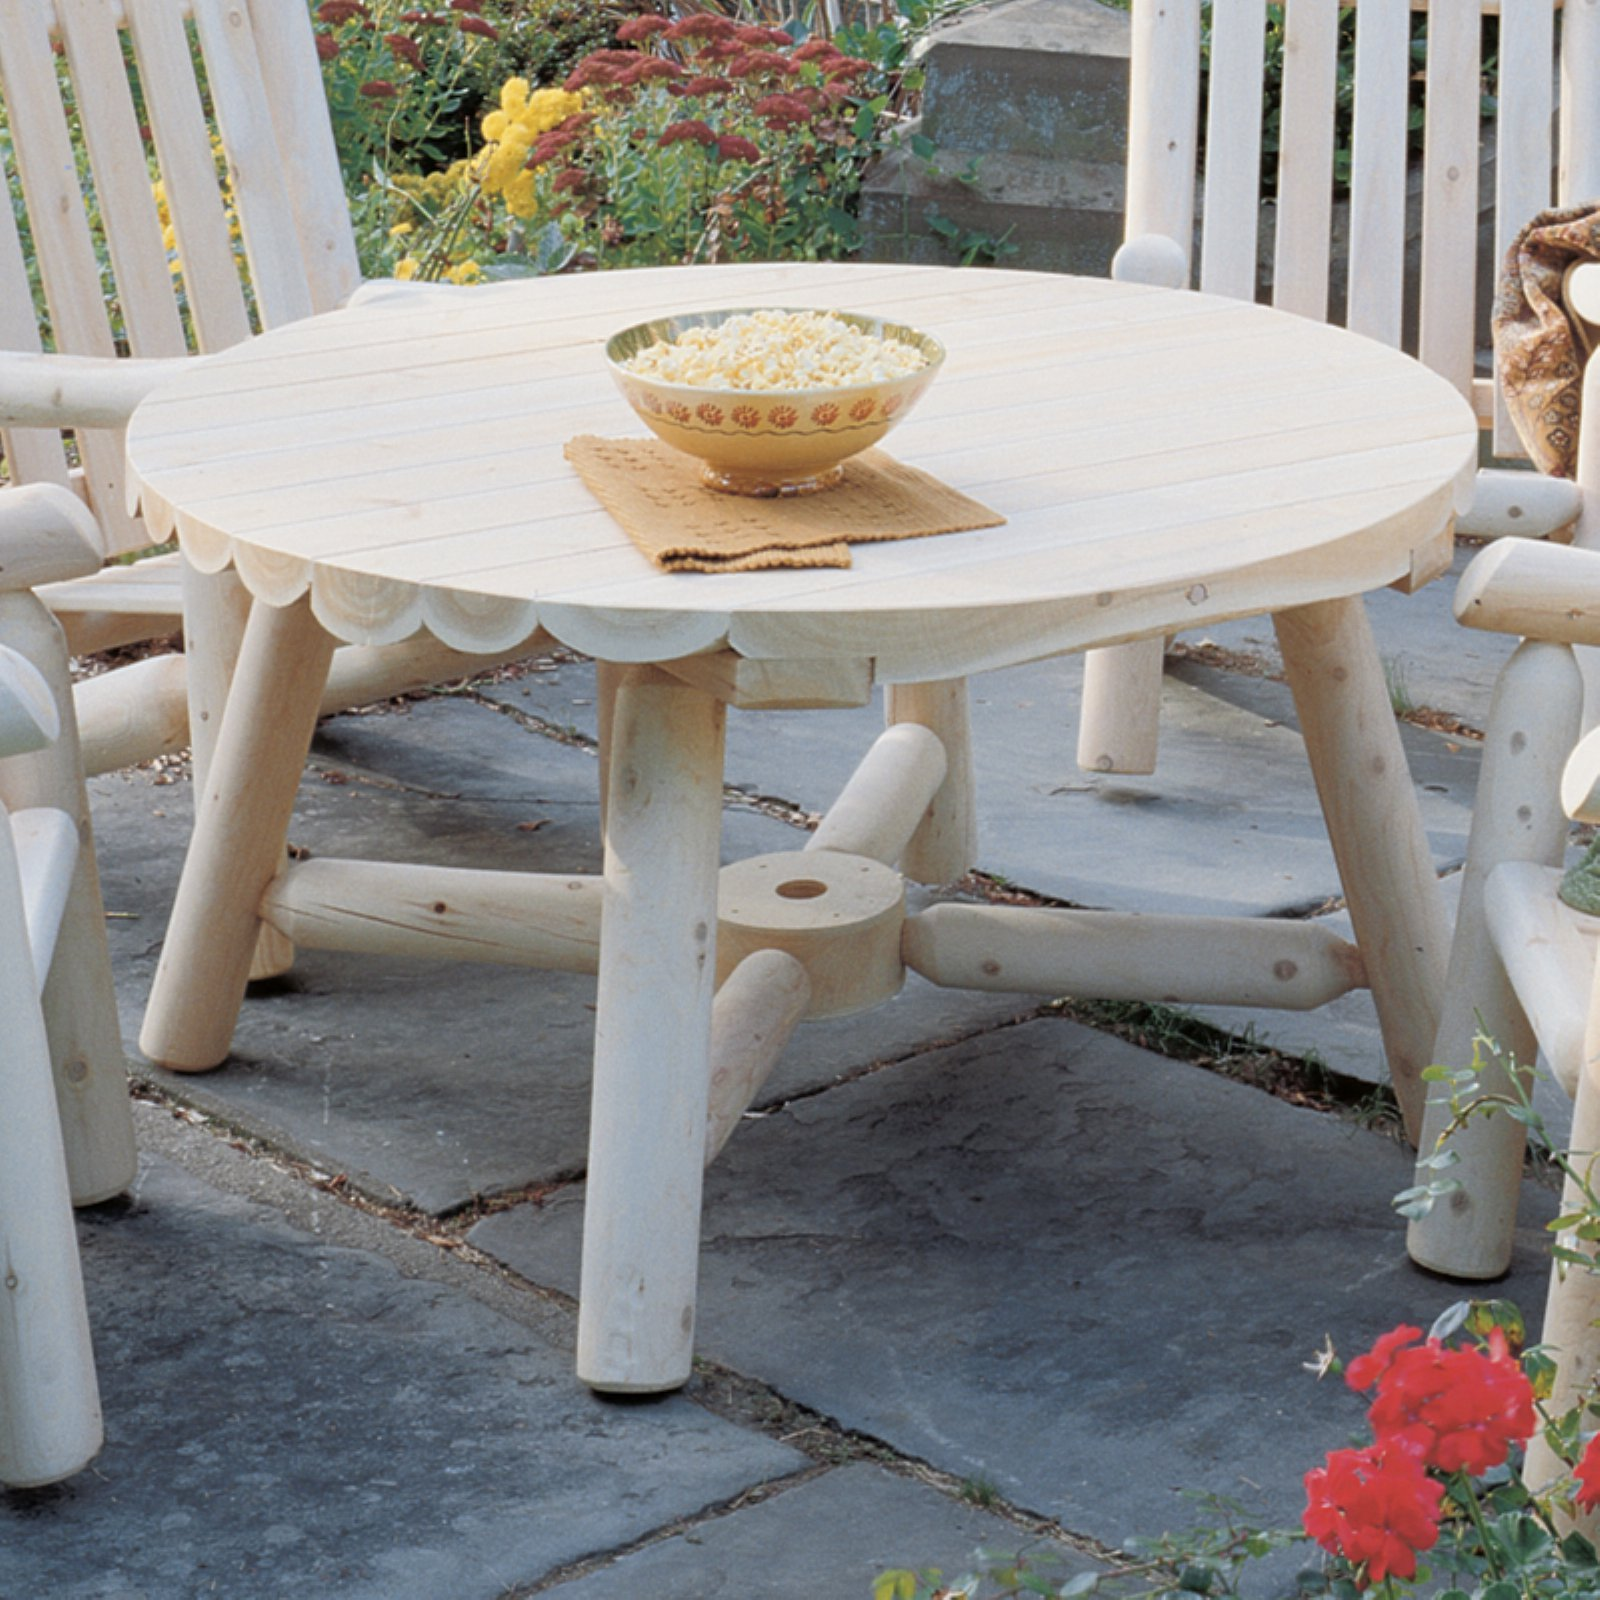 Rustic Natural Cedar Furniture Harvest Family Round Table - Without Umbrella Hole